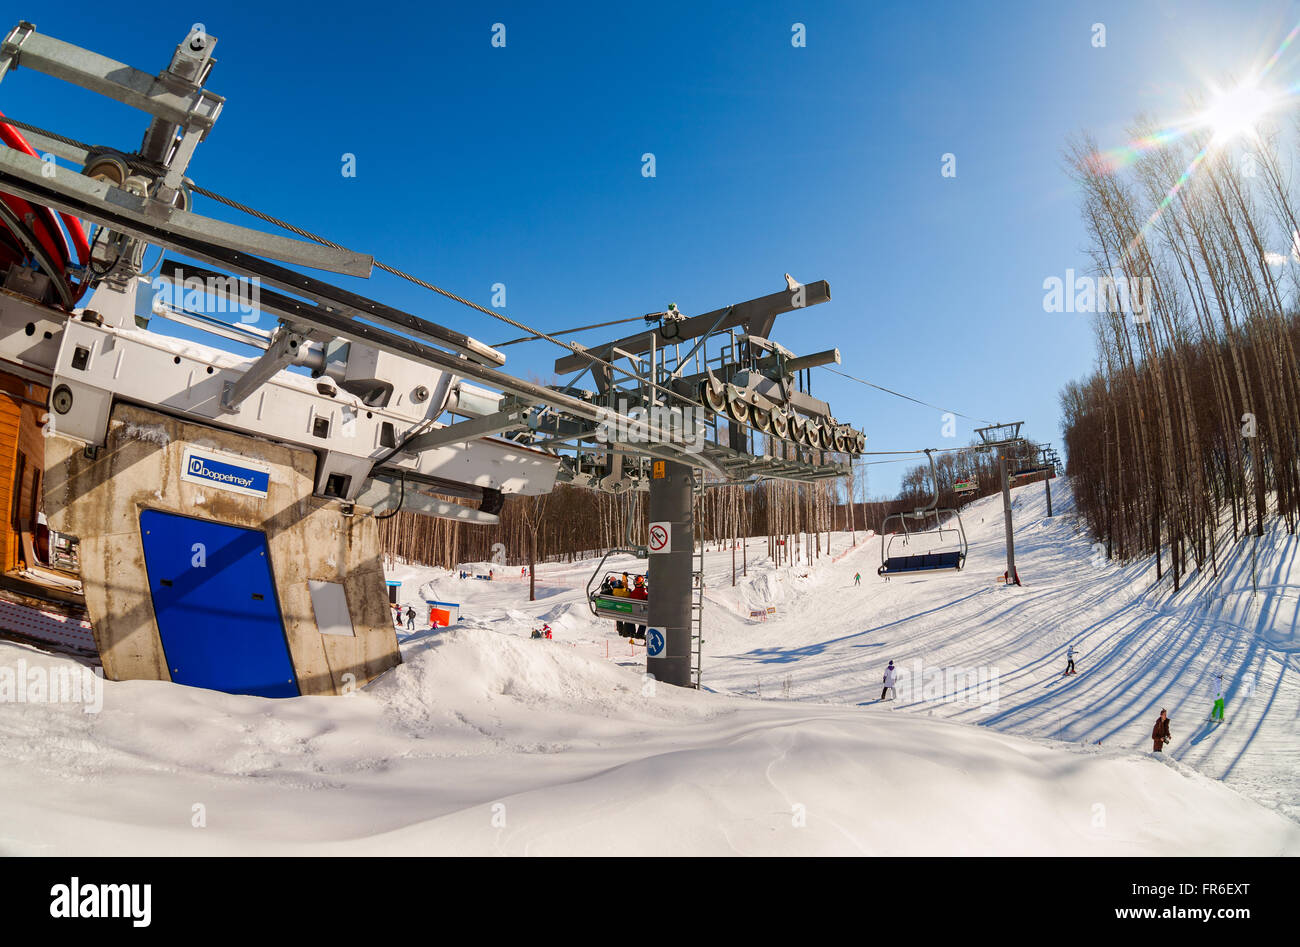 Chairlift in 'Krasnaya Glinka' mountain ski resort in winter sunny day in Samara, Russia - Stock Image